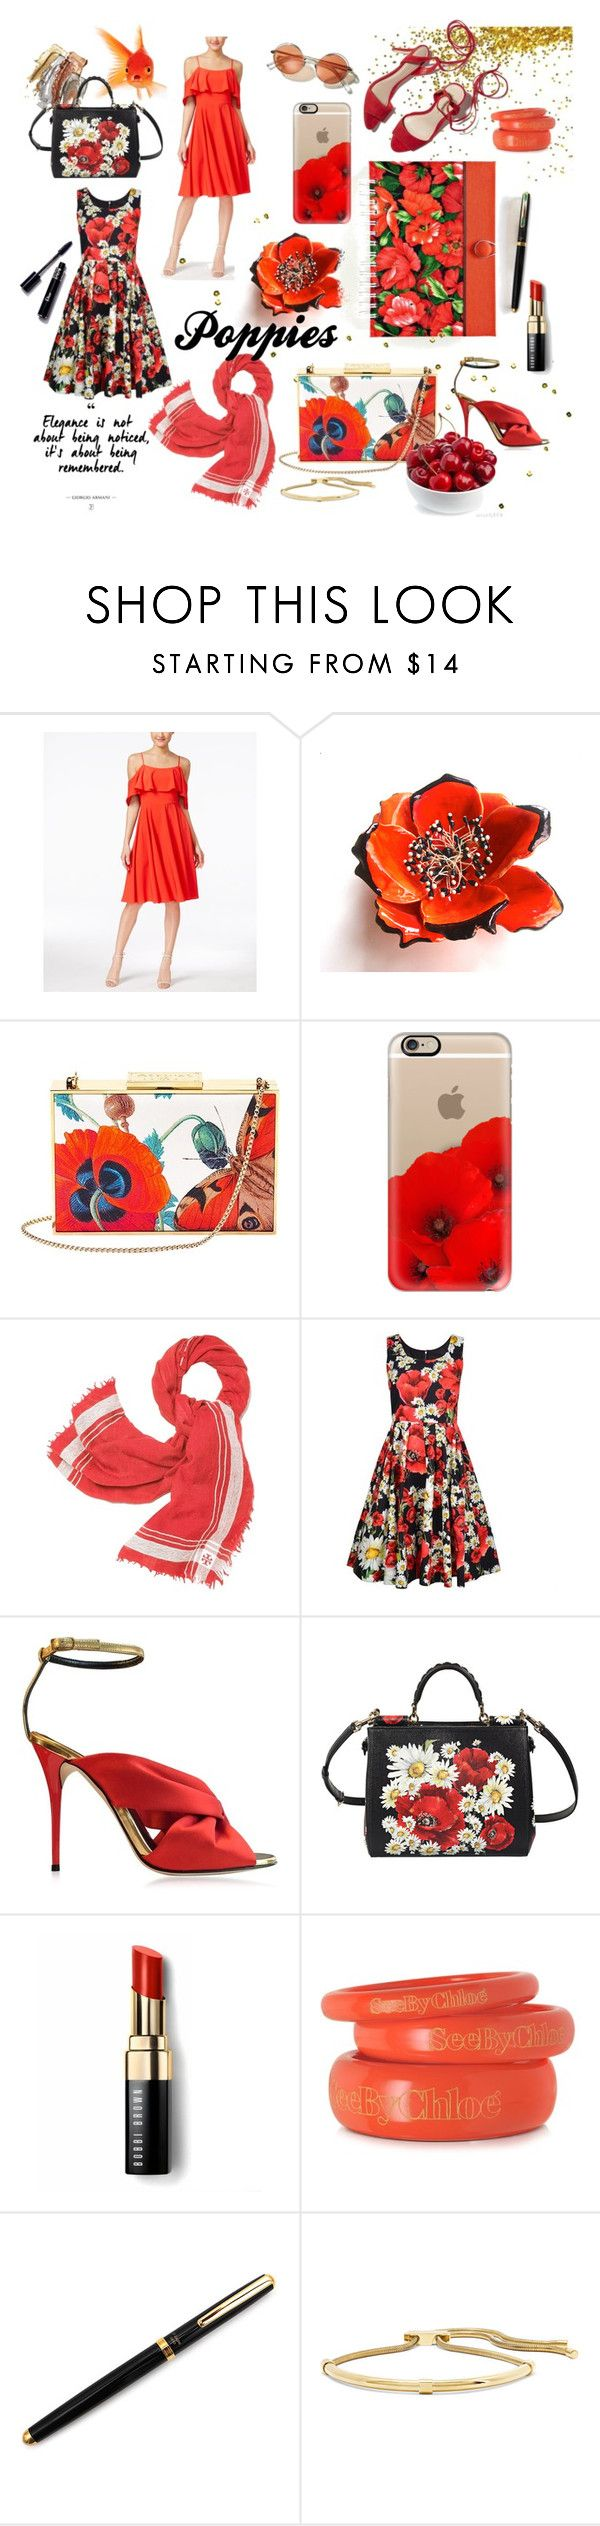 """Poppies!!"" by iwona-estera on Polyvore featuring CeCe, Aspinal of London, Casetify, Tory Burch, Loeffler Randall, Dolce&Gabbana, Oscar de la Renta, Bobbi Brown Cosmetics, See by Chloé and Lanvin"